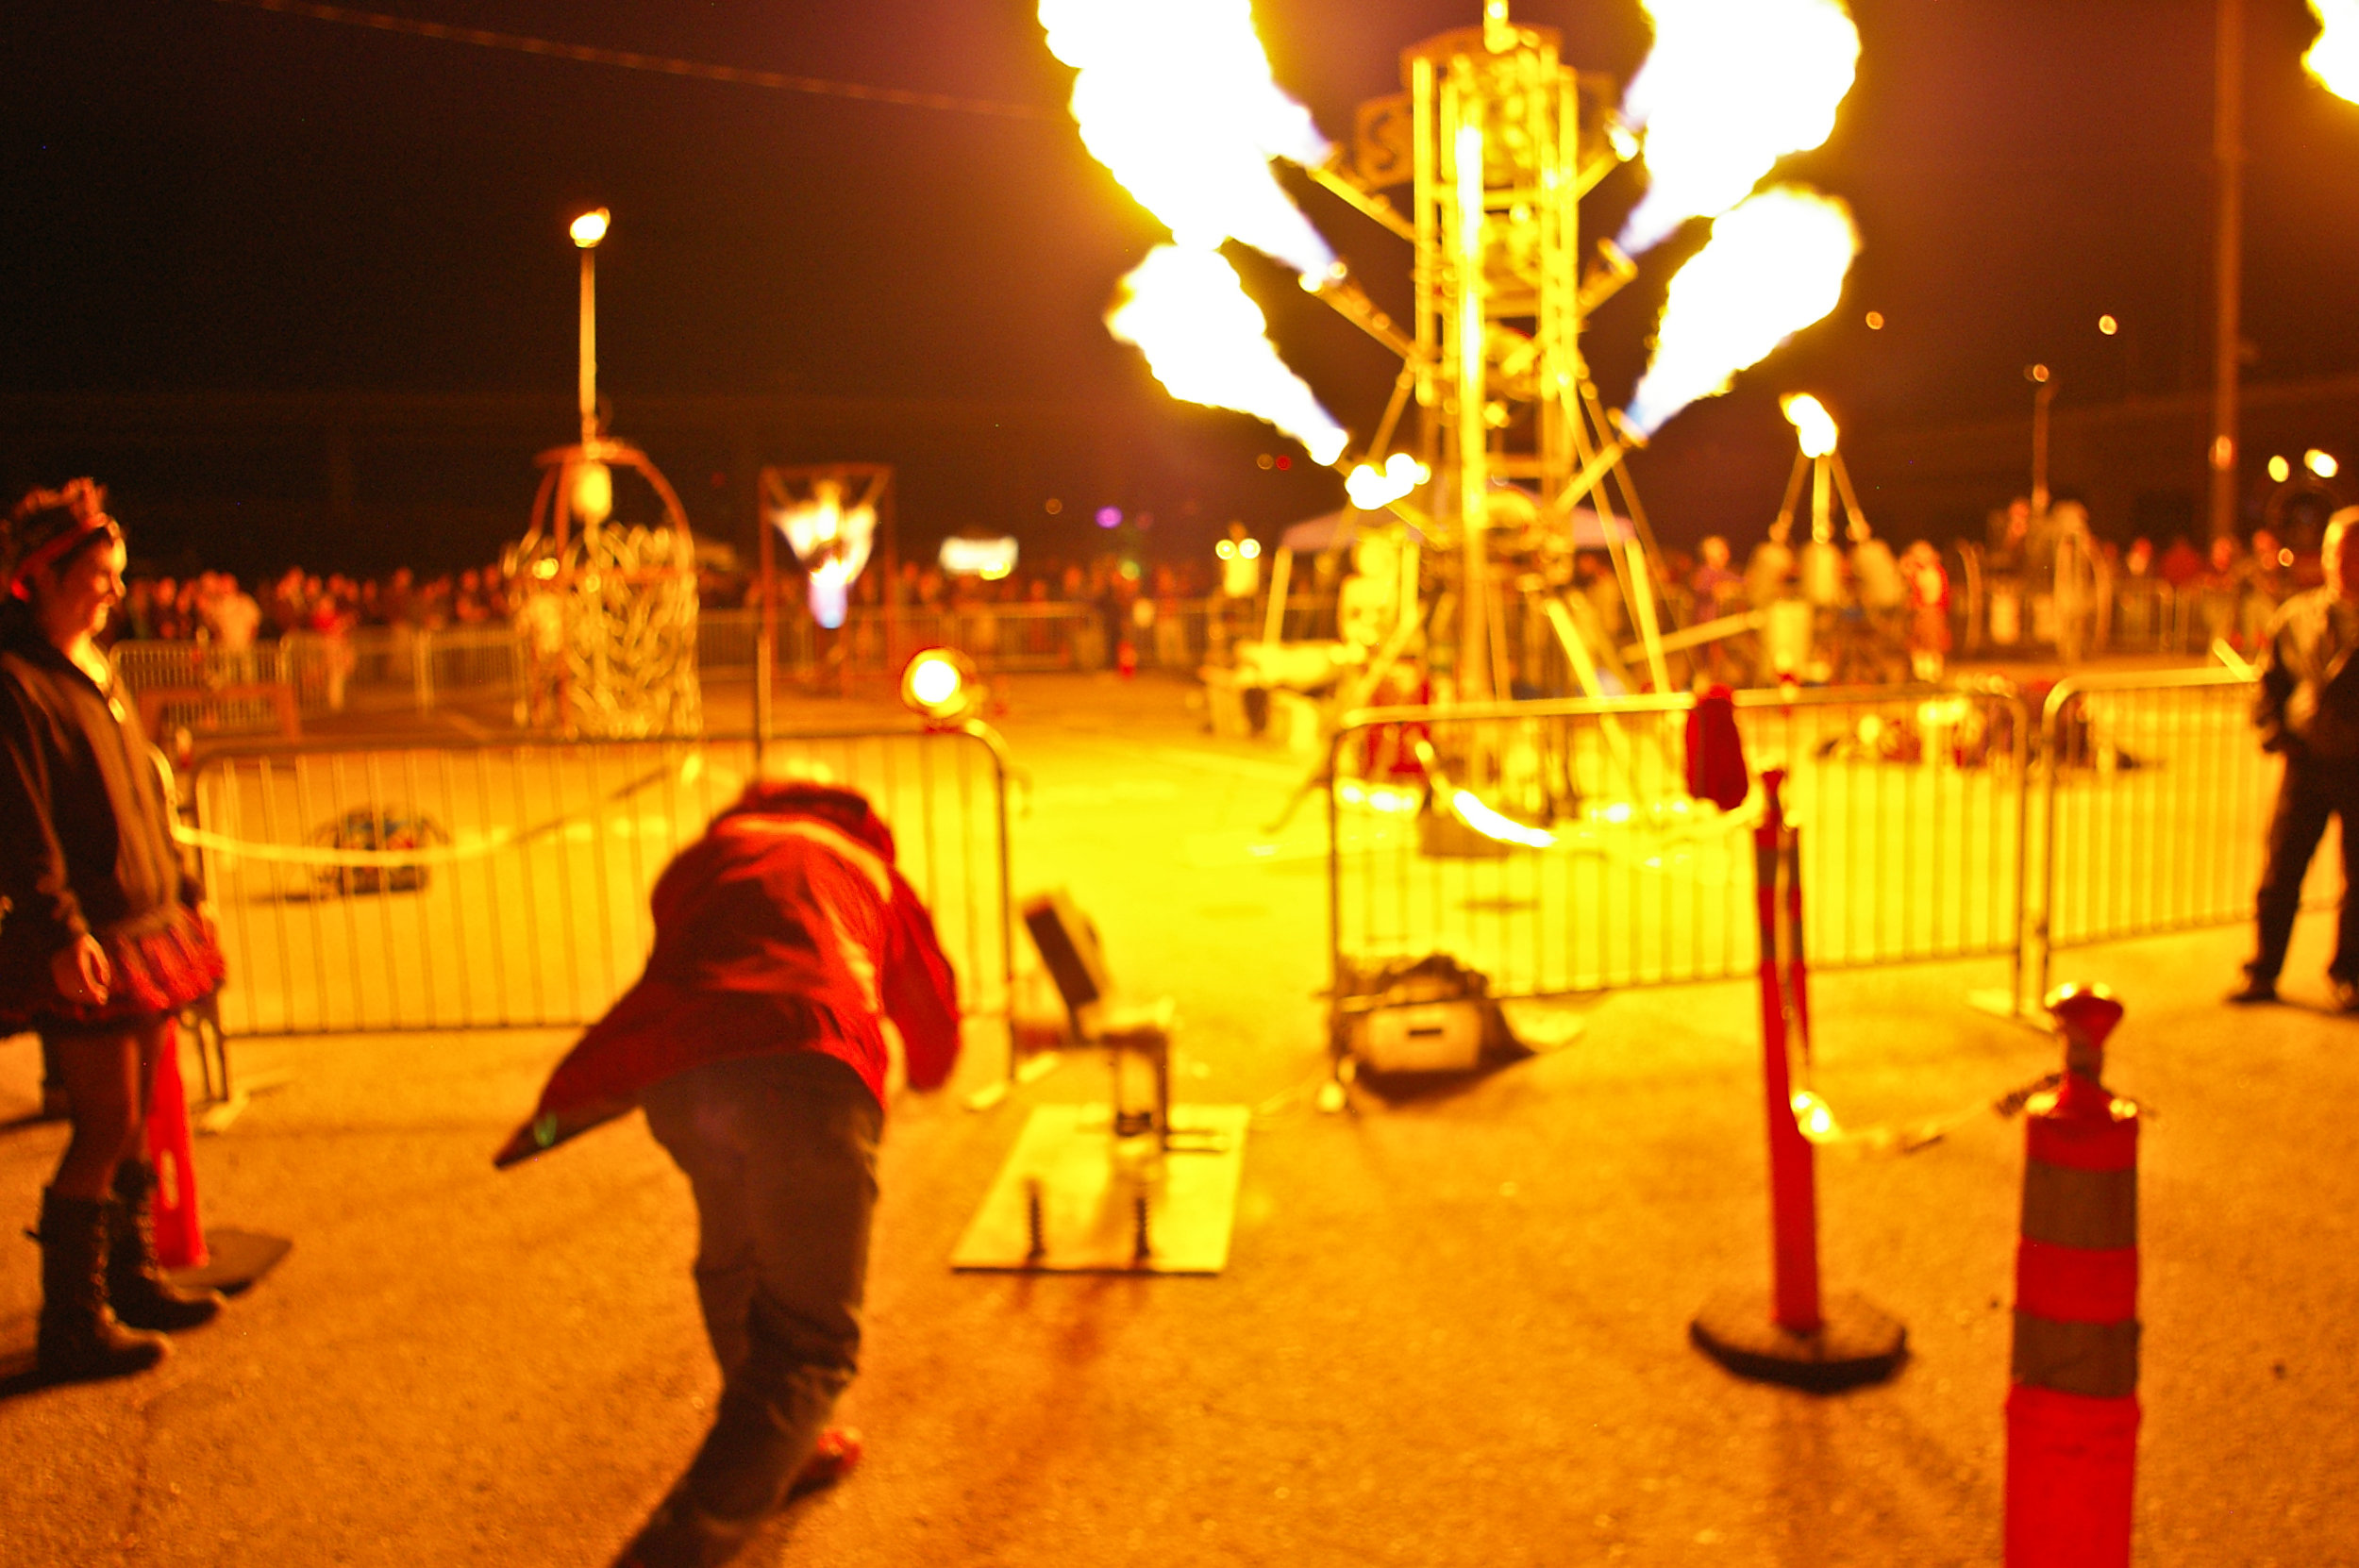 crucible fire arts festival 09-5.jpg